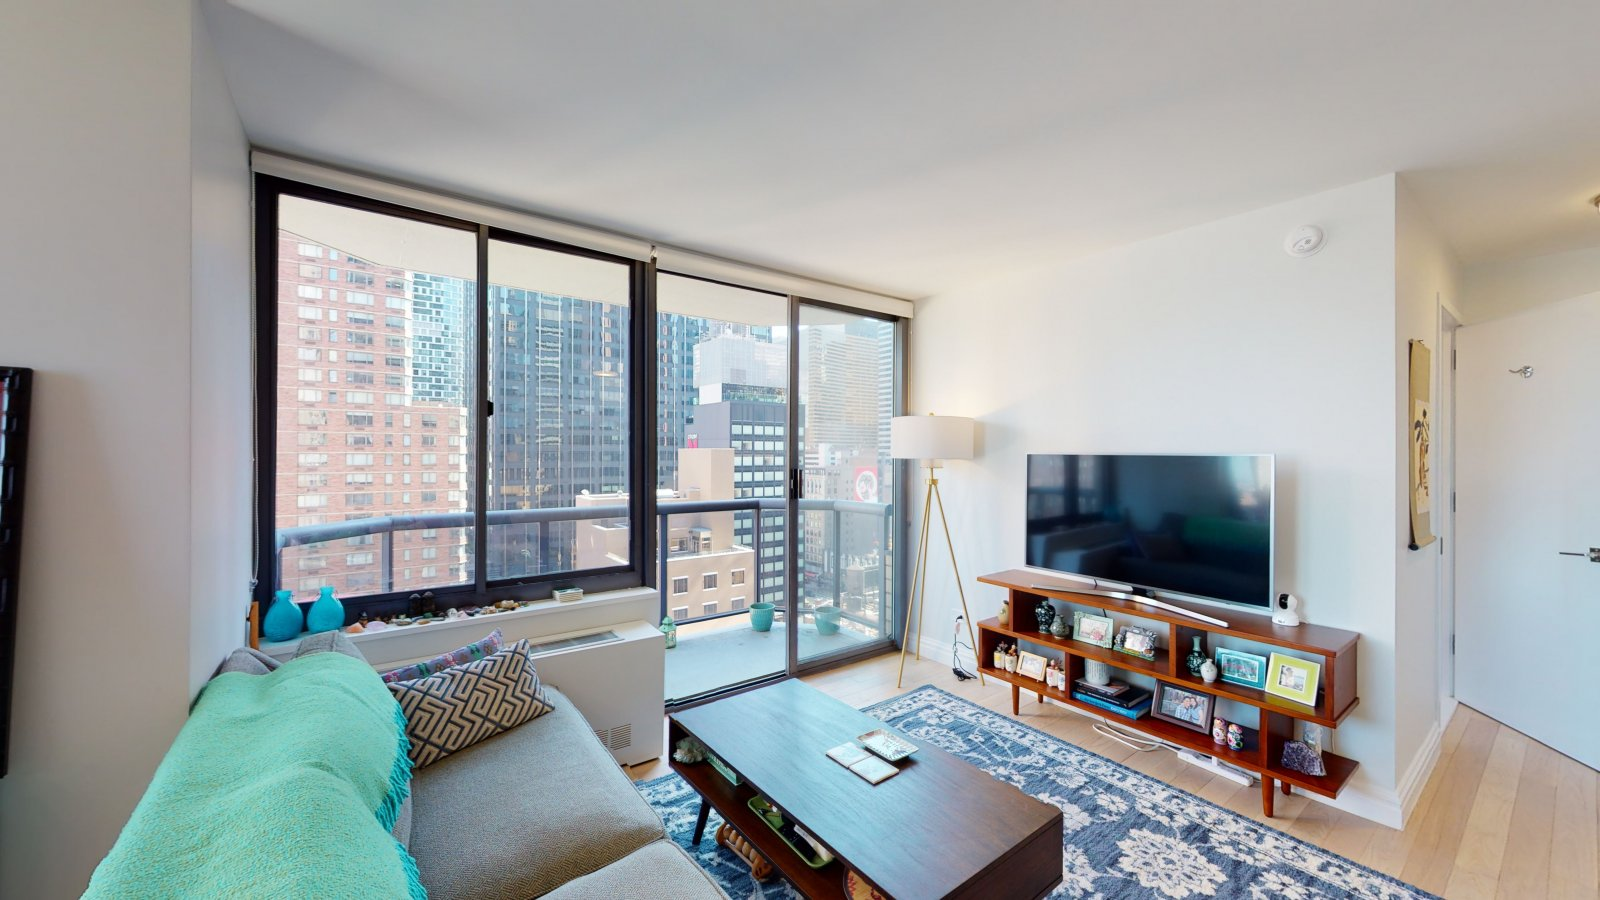 235 W 48th Street Unit 22L Living room and balcony view of this Times Square adjacent rental apartment.